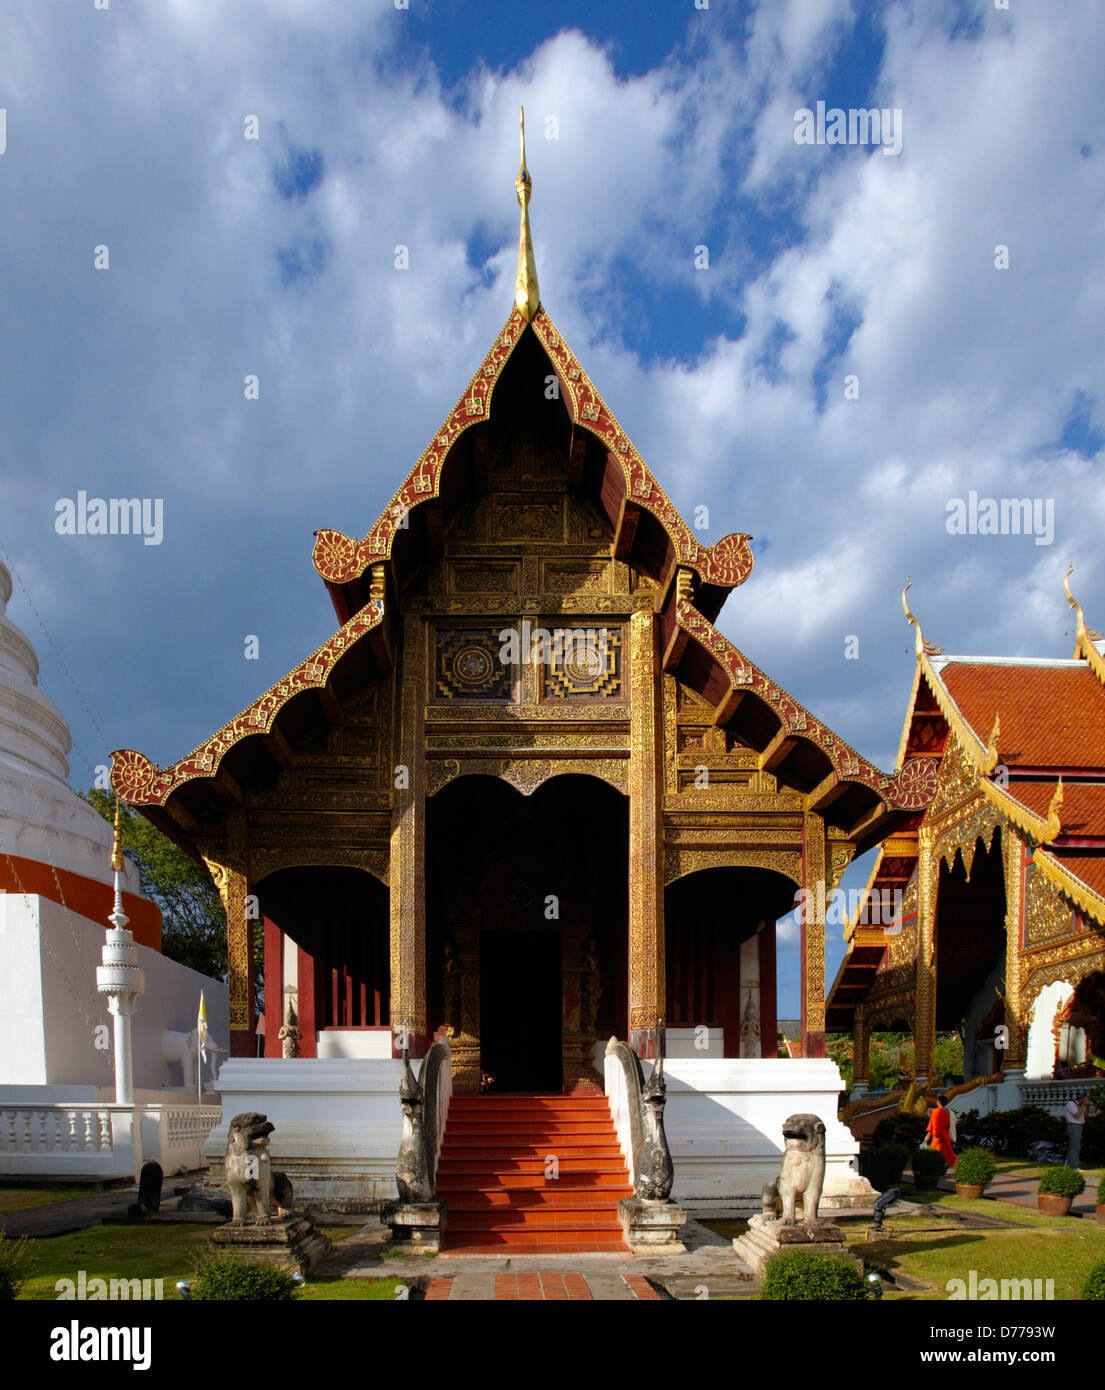 Thailand Chiang Mai city Wat Phra Singh - Buddhist Temple This temple contains supreme examples Lanna art. chedi was first Stock Photo